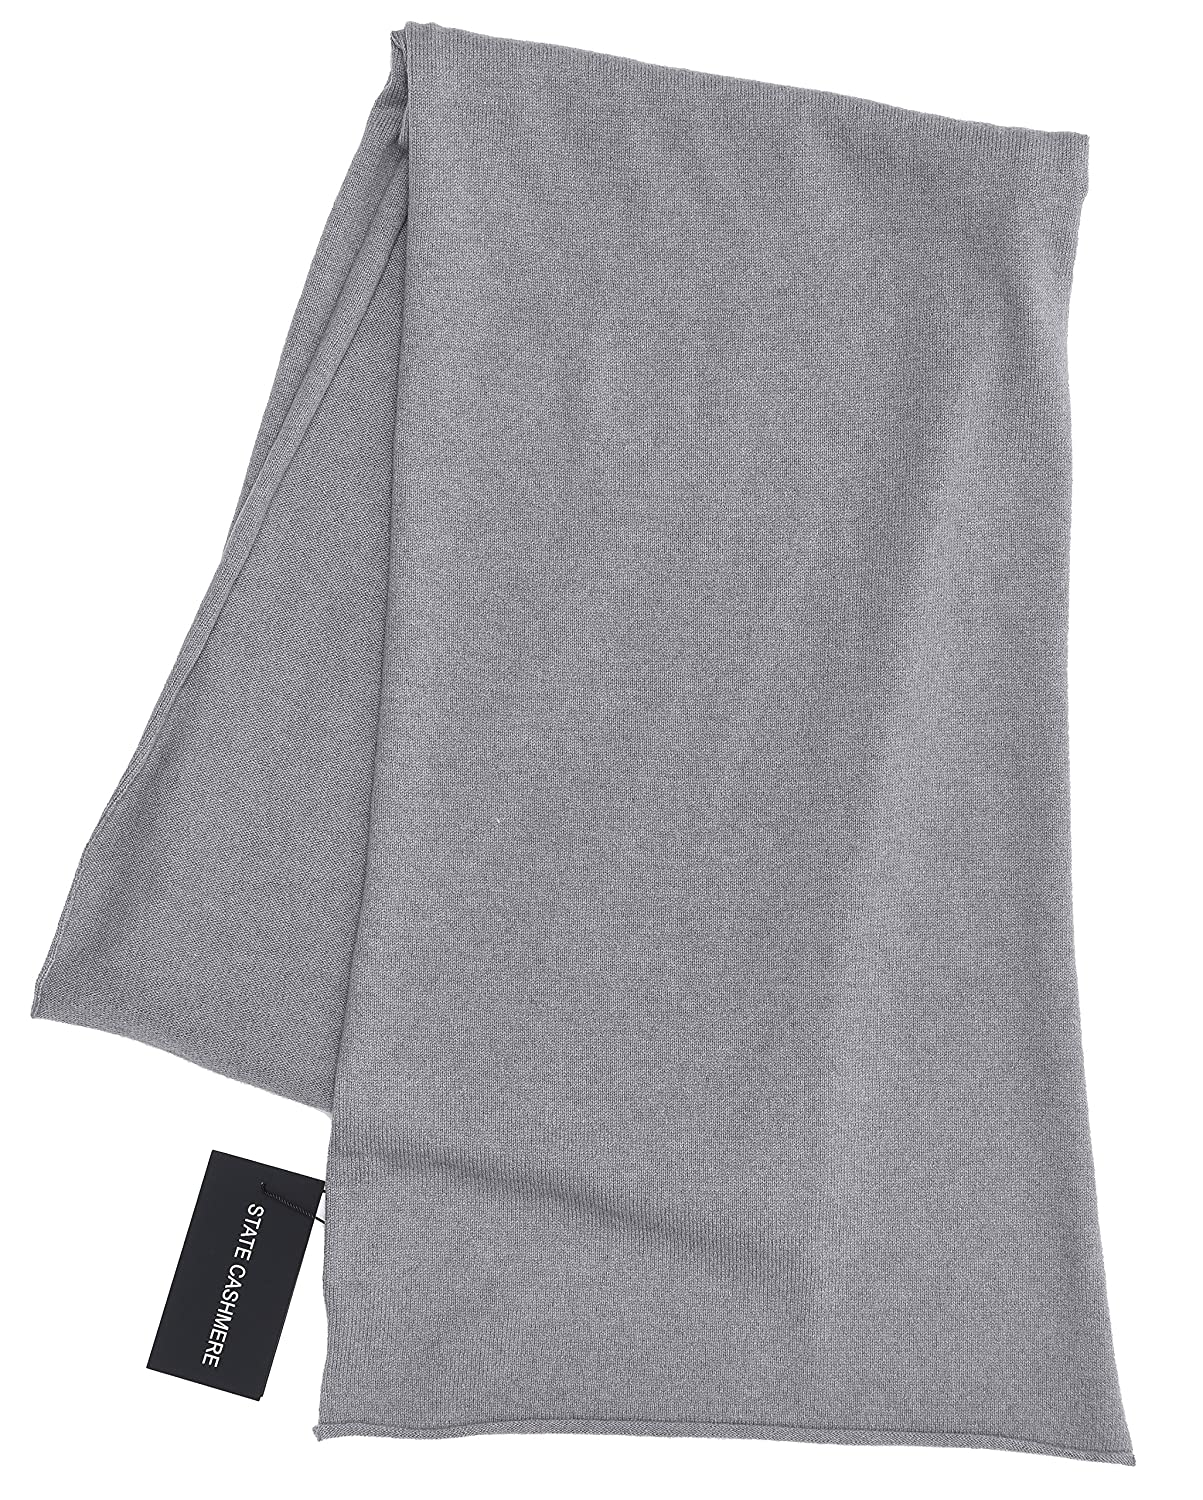 Heather Grey State Cashmere 100% Cashmere Solid color Scarf Wrap, Soft and Cozy 80 x13.5